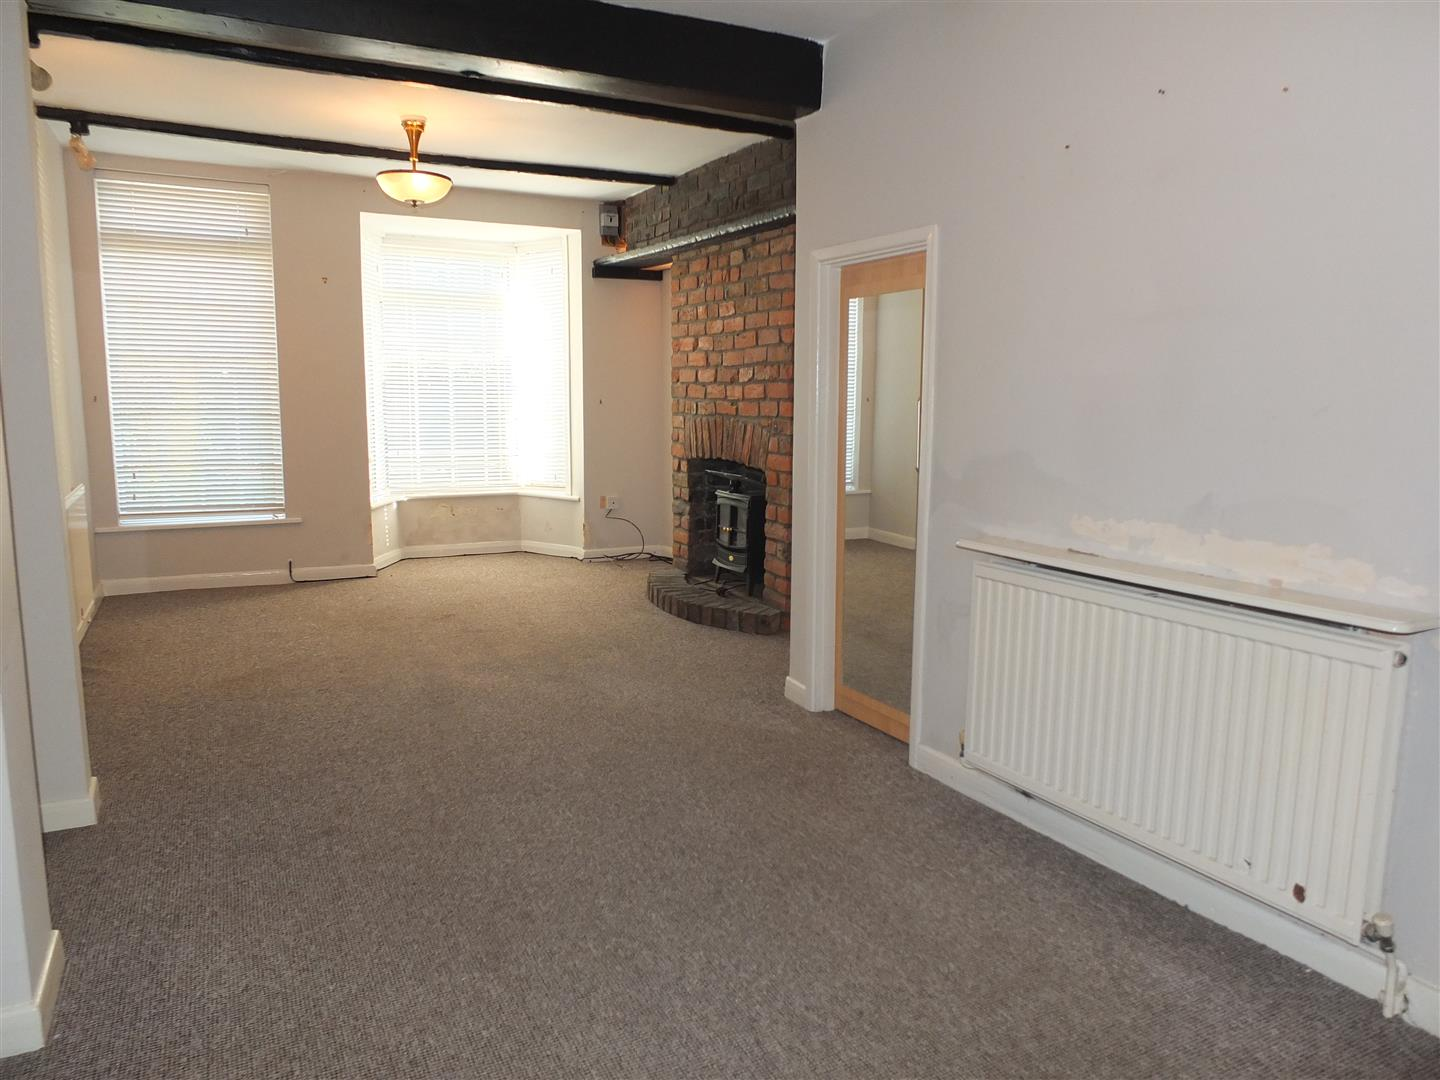 2 bed terraced house to rent in Sutton Bridge Spalding, PE12 9SX 1